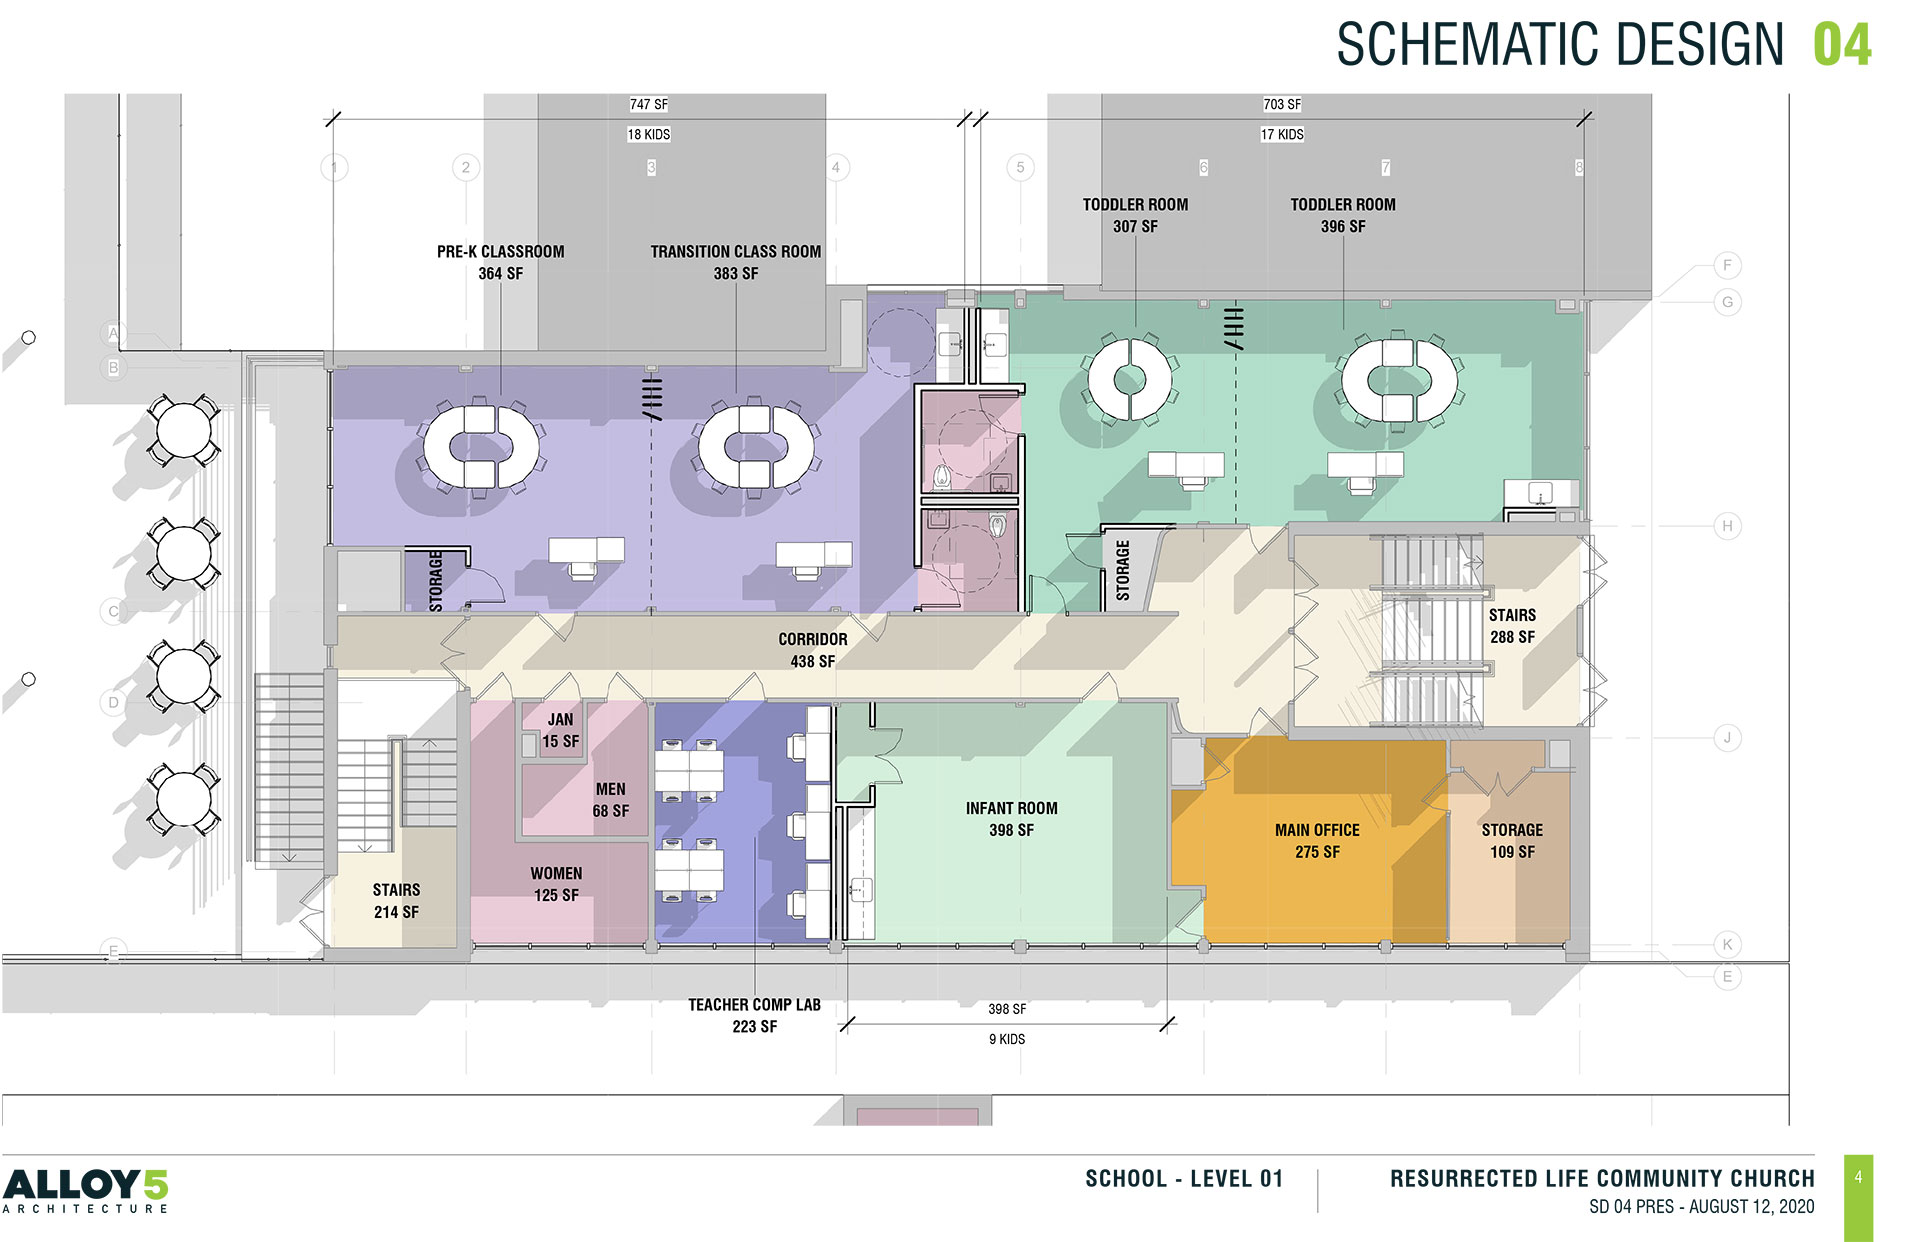 layout plans for RCDC school renovations